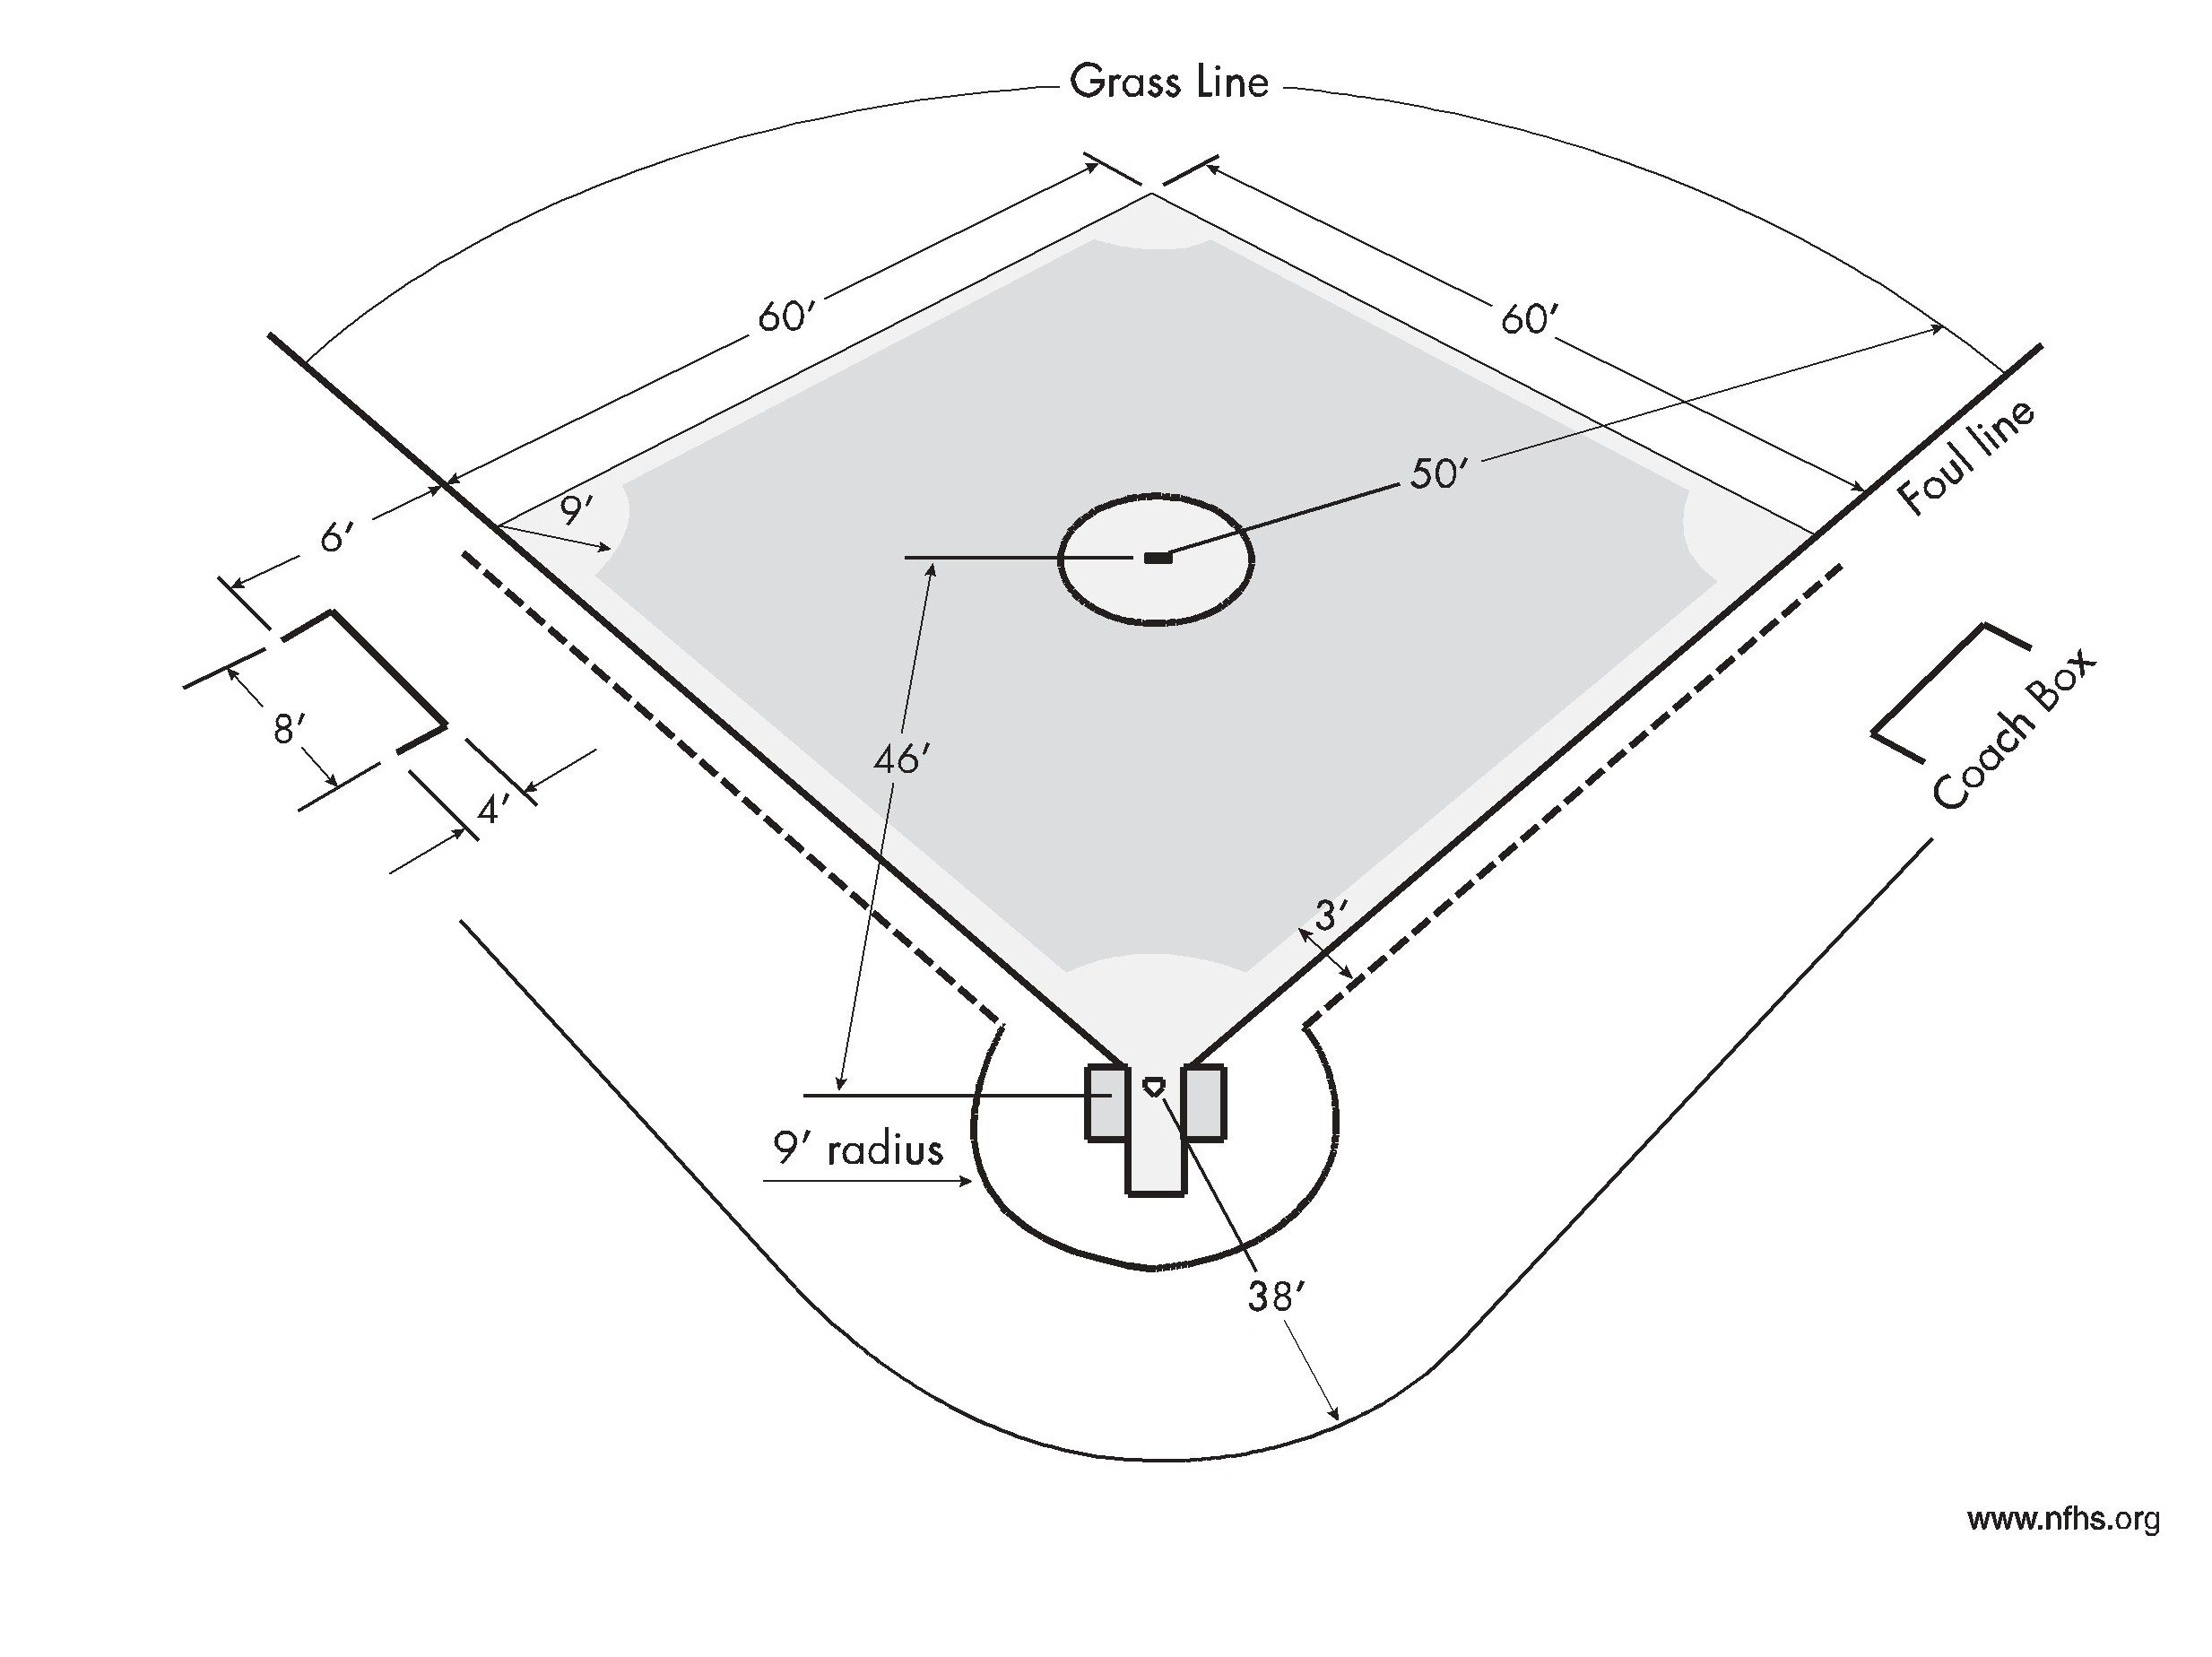 Coaches kit brentsville district youth baseball another diagram for the field set up httpfilesleagueathleticsimagesclub12081baseball dimensionsg pooptronica Images